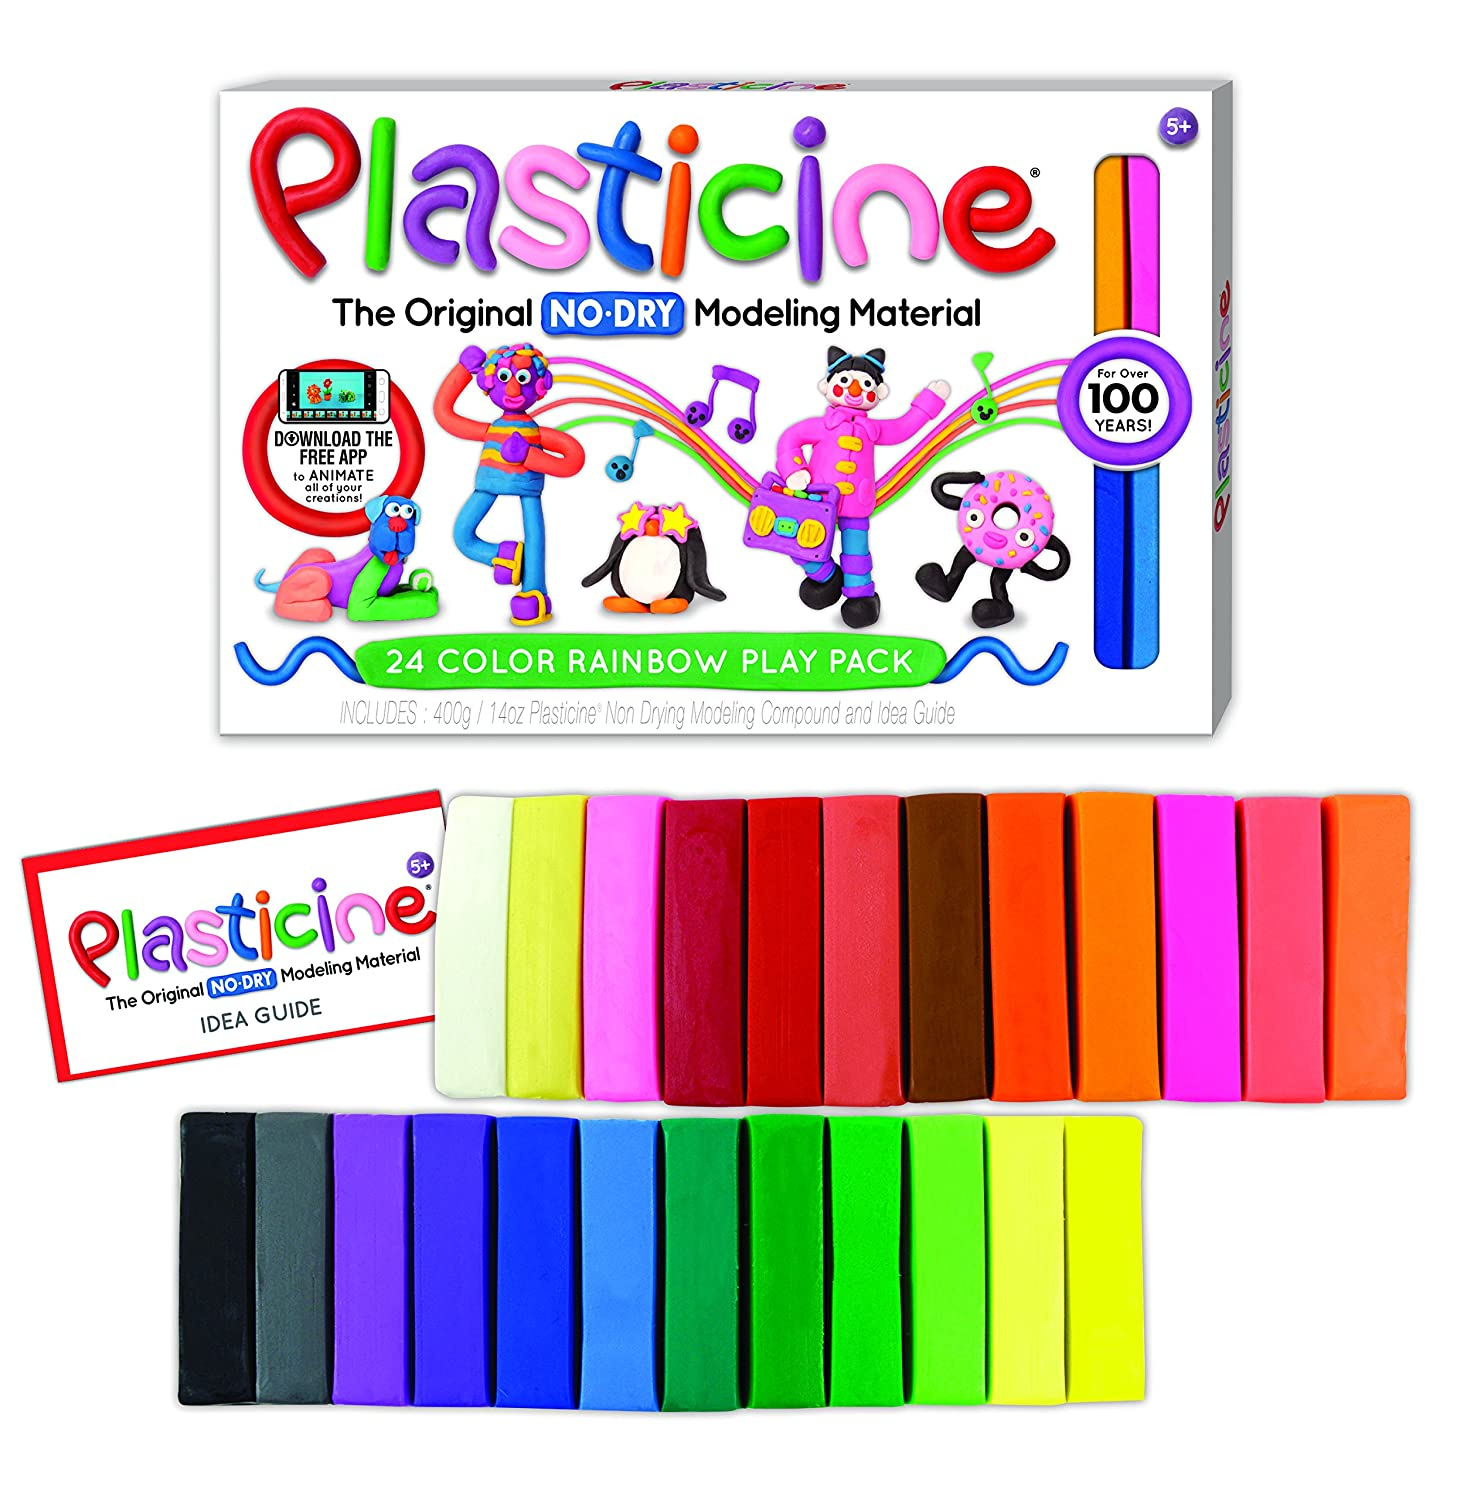 Plasticine Modeling Clay $1.16 From Amazon With Free Shipping